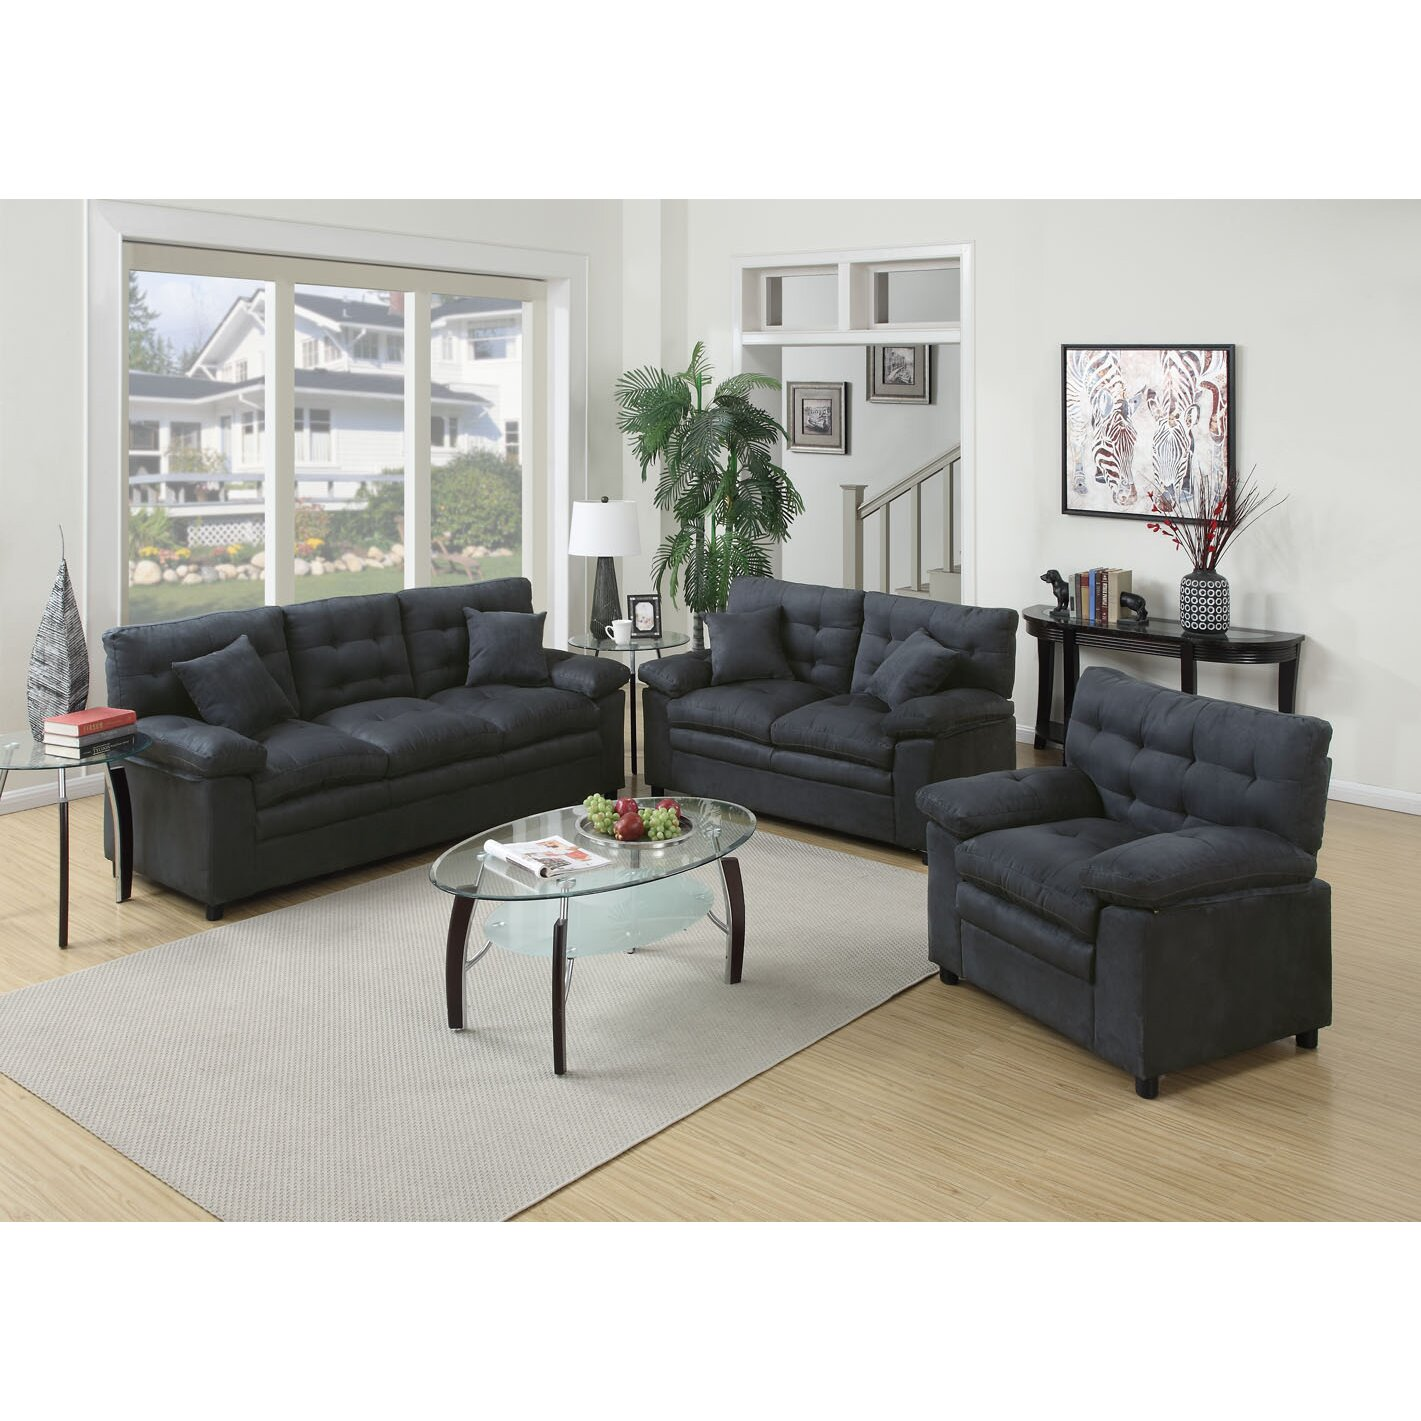 Poundex bobkona colona 3 piece living room set reviews for Drawing room furniture set